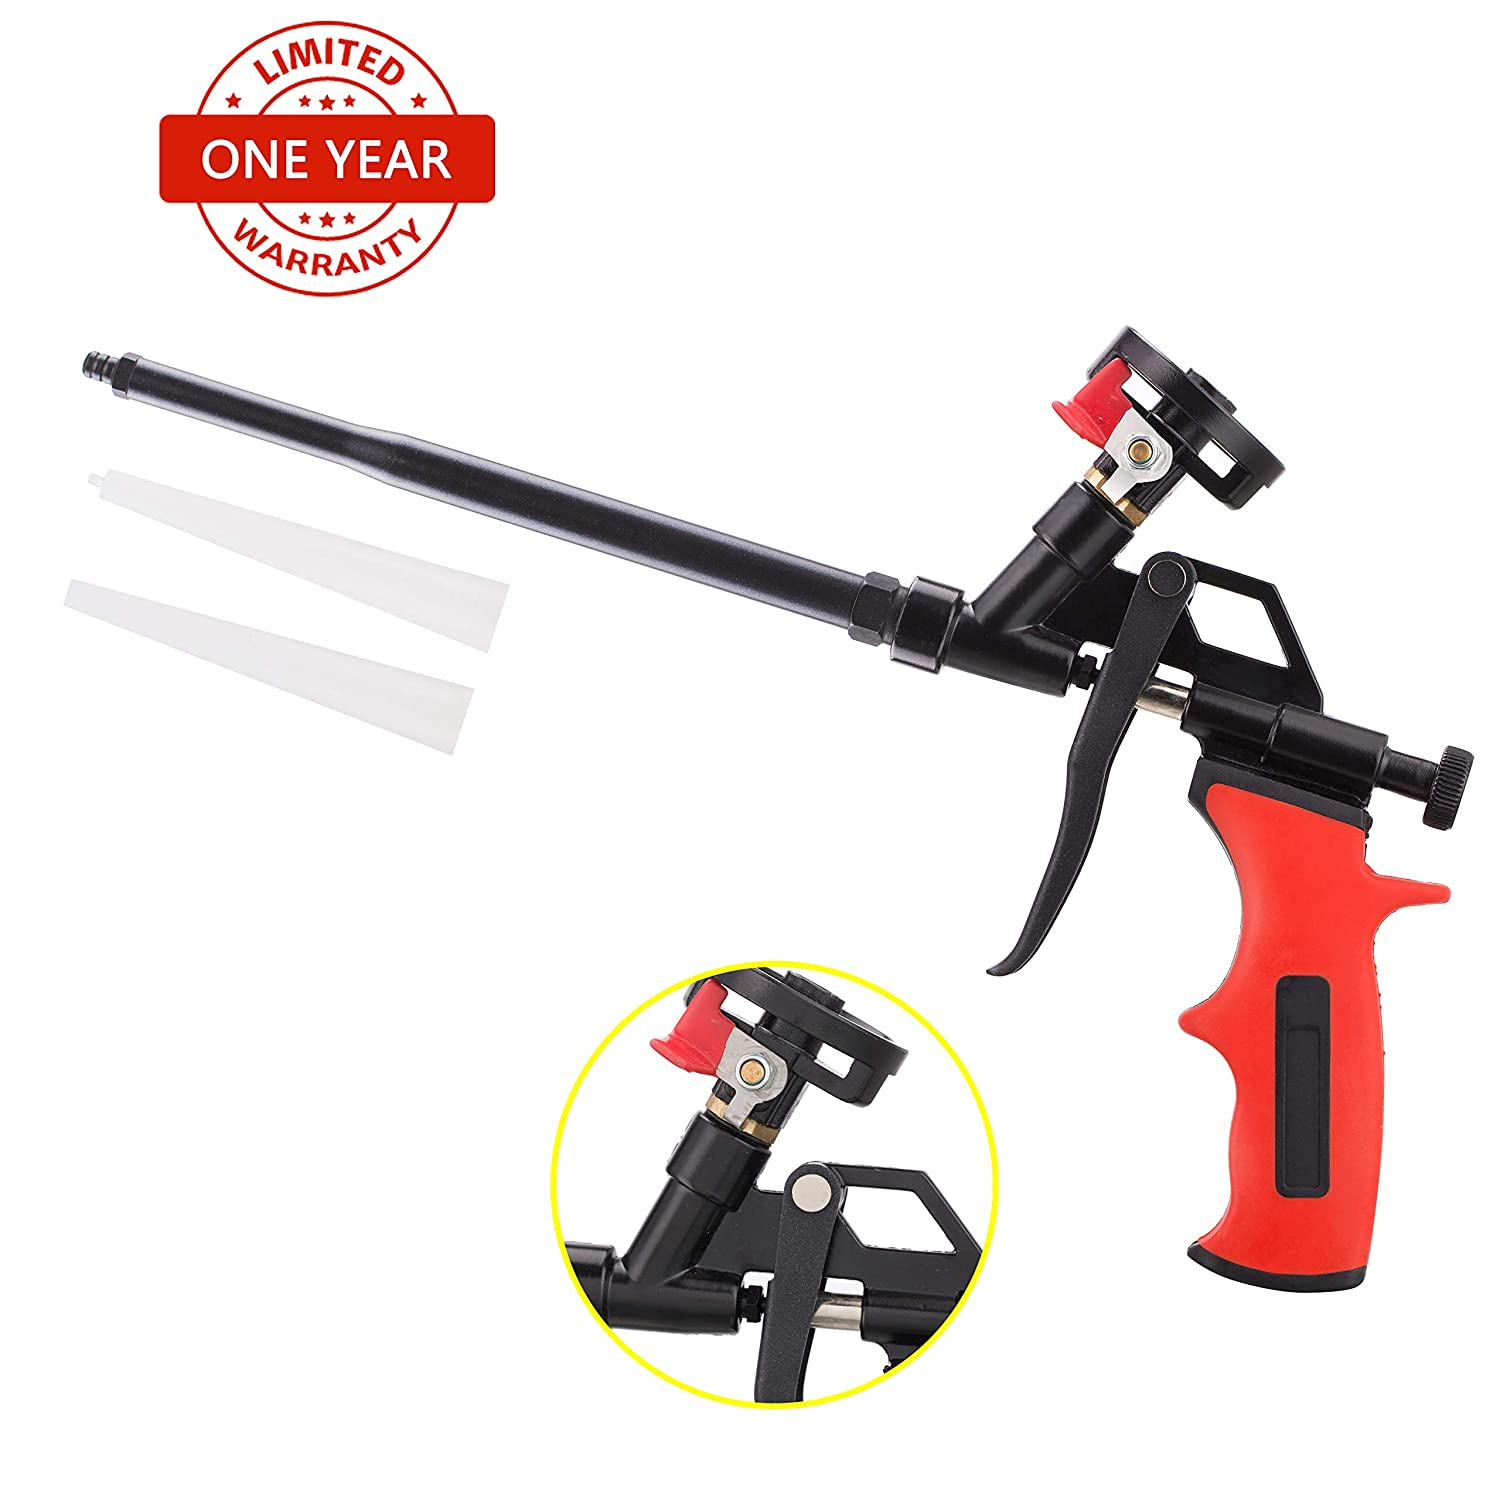 Needn't Clean Foam Gun, Pu Expending Foaming Gun, Upgrade Caulking Gun, Heavy Duty Spray Foam Gun, Mental Body Covered with PFTE, Suitable for Caulking, Filling, Sealing, Home and Office Use SOCSPARK